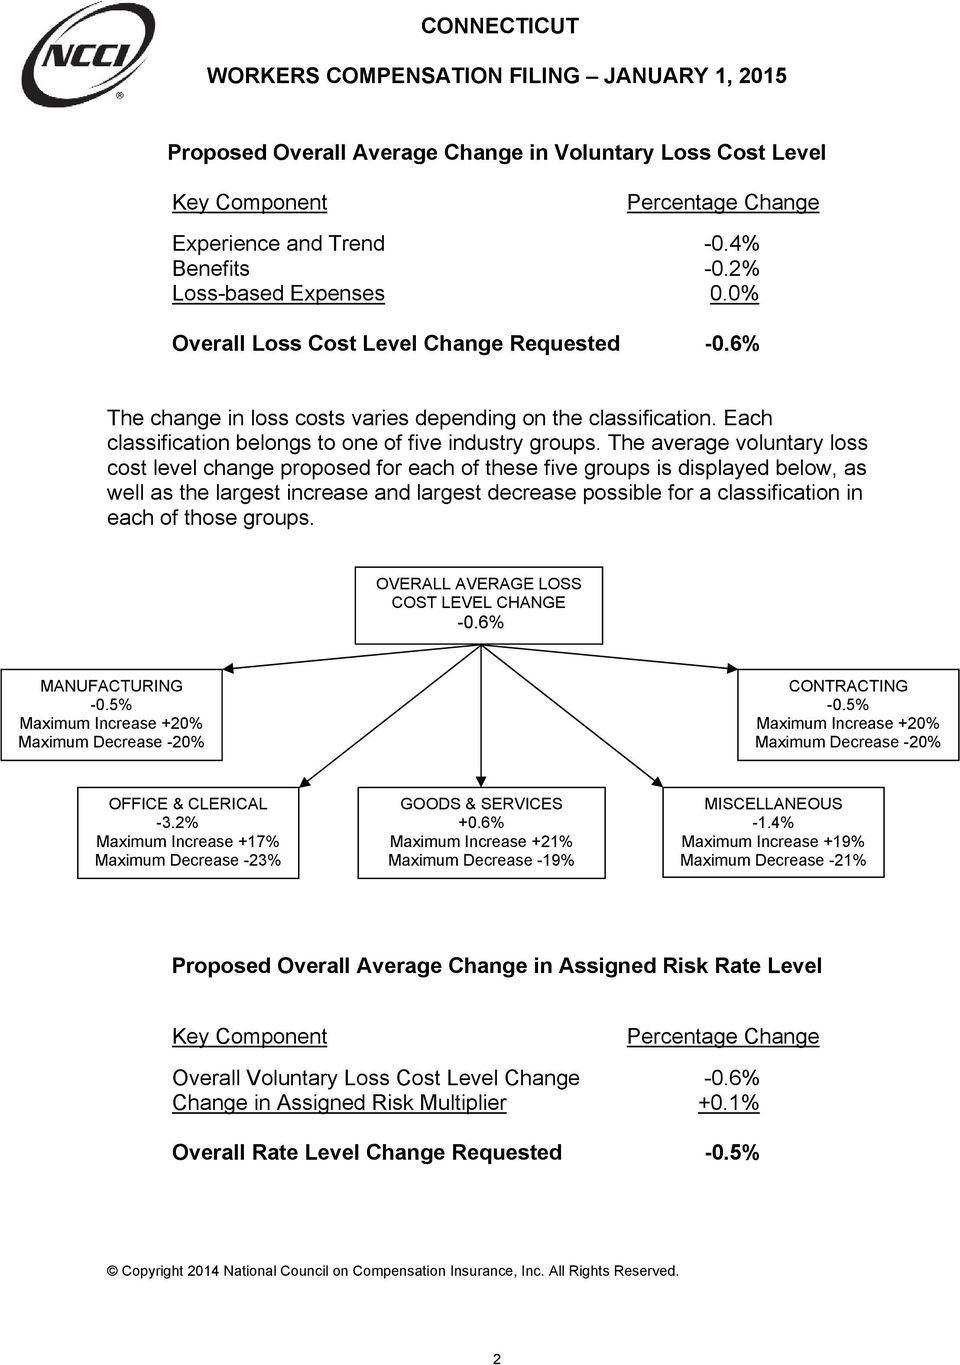 The average voluntary loss cost level change proposed for each of these five groups is displayed below, as well as the largest increase and largest decrease possible for a classification in each of